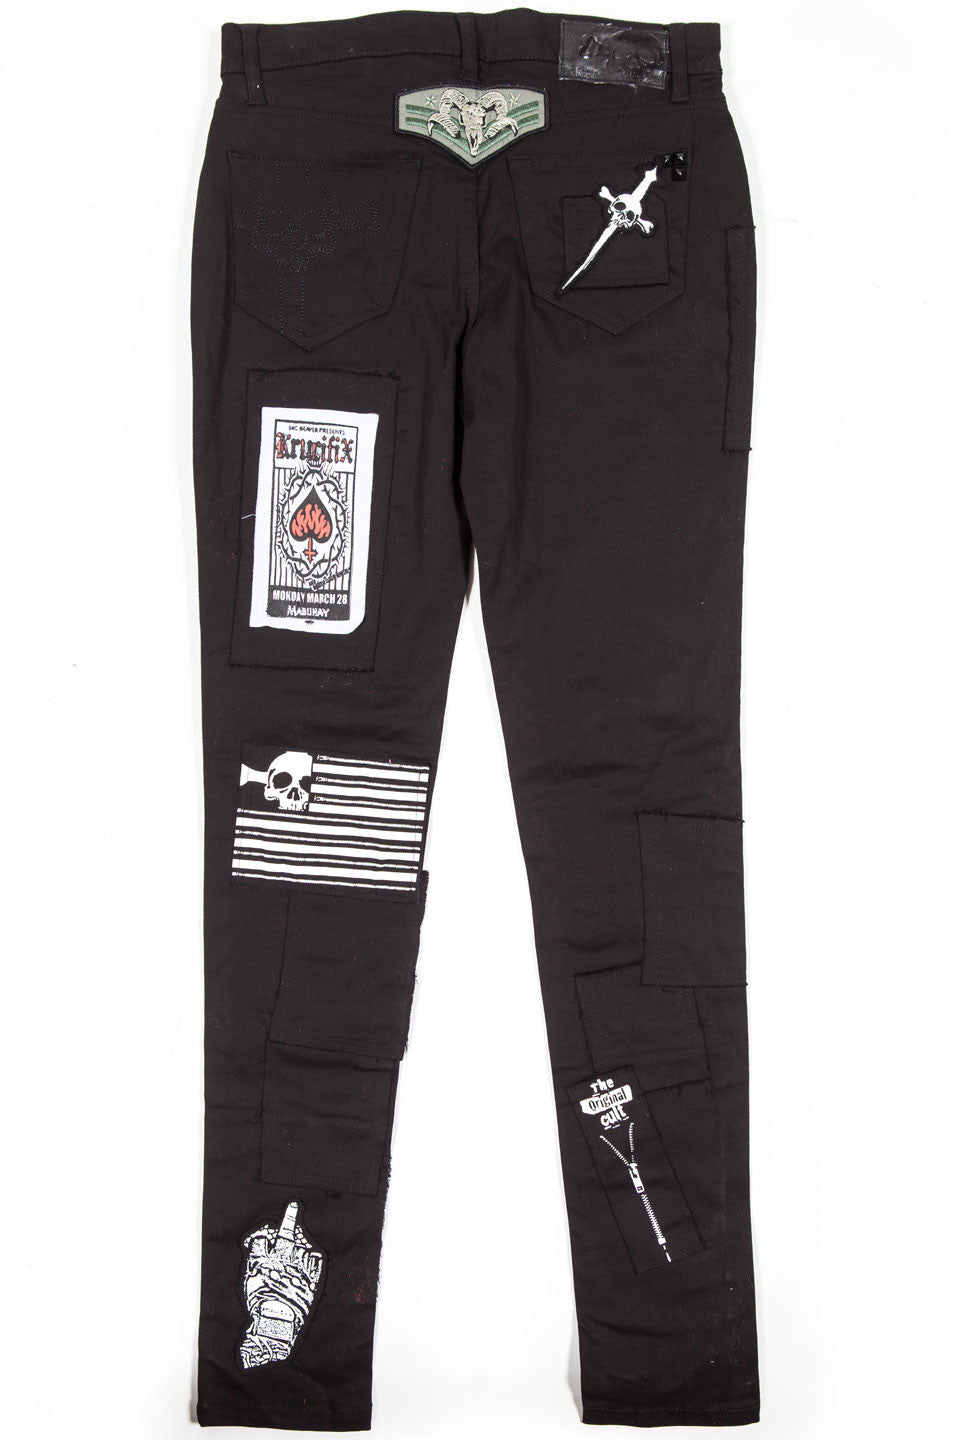 Punk & Disorderly Patch Jean - Bottoms - Lip Service